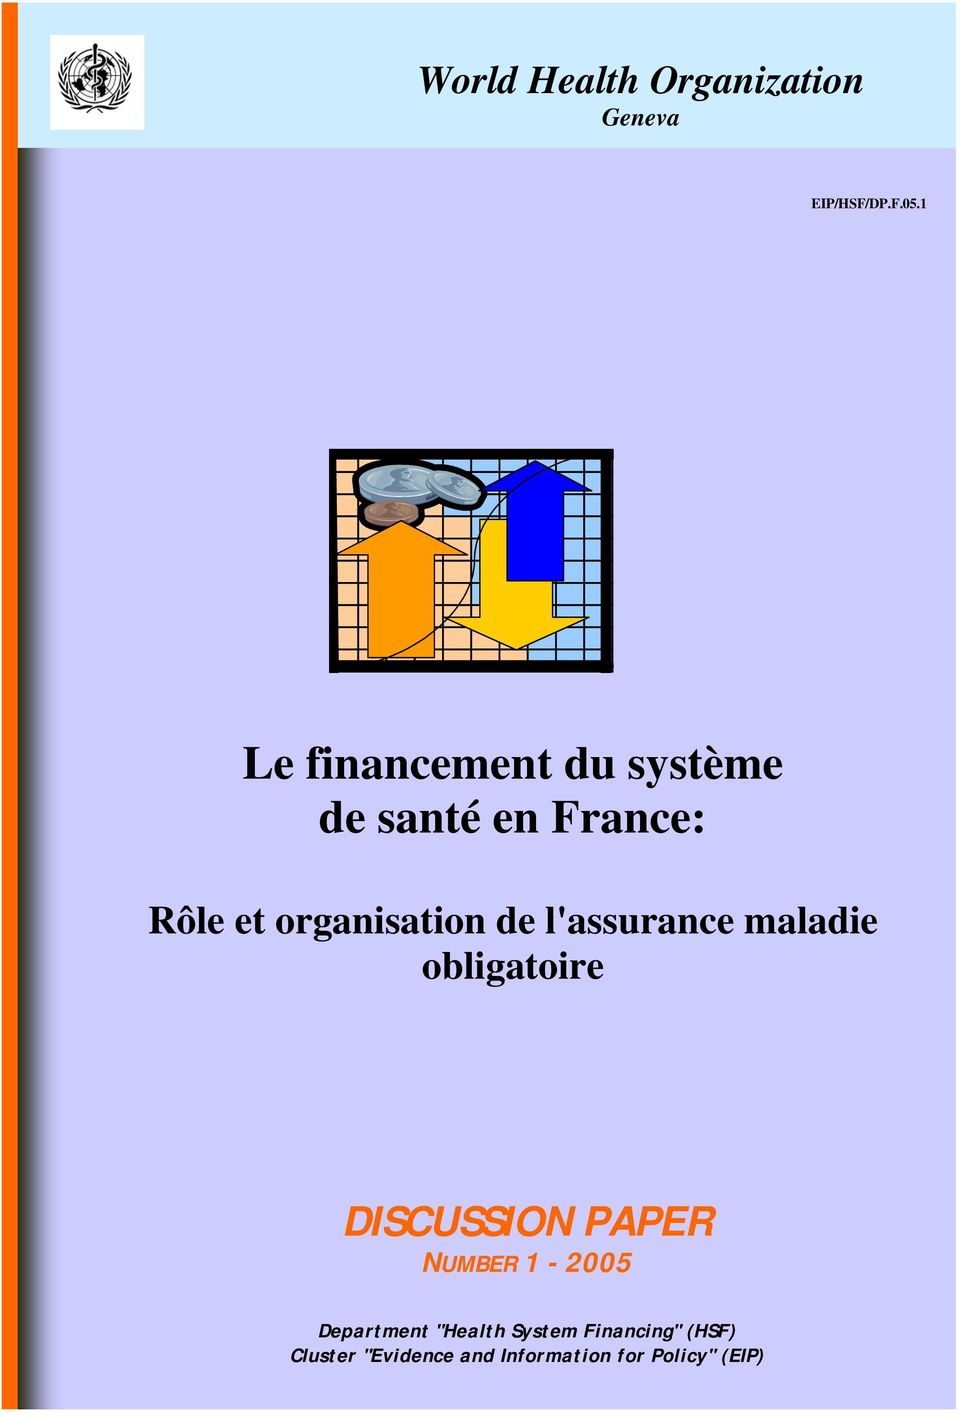 de l'assurance maladie obligatoire DISCUSSION PAPER NUMBER 1-2005